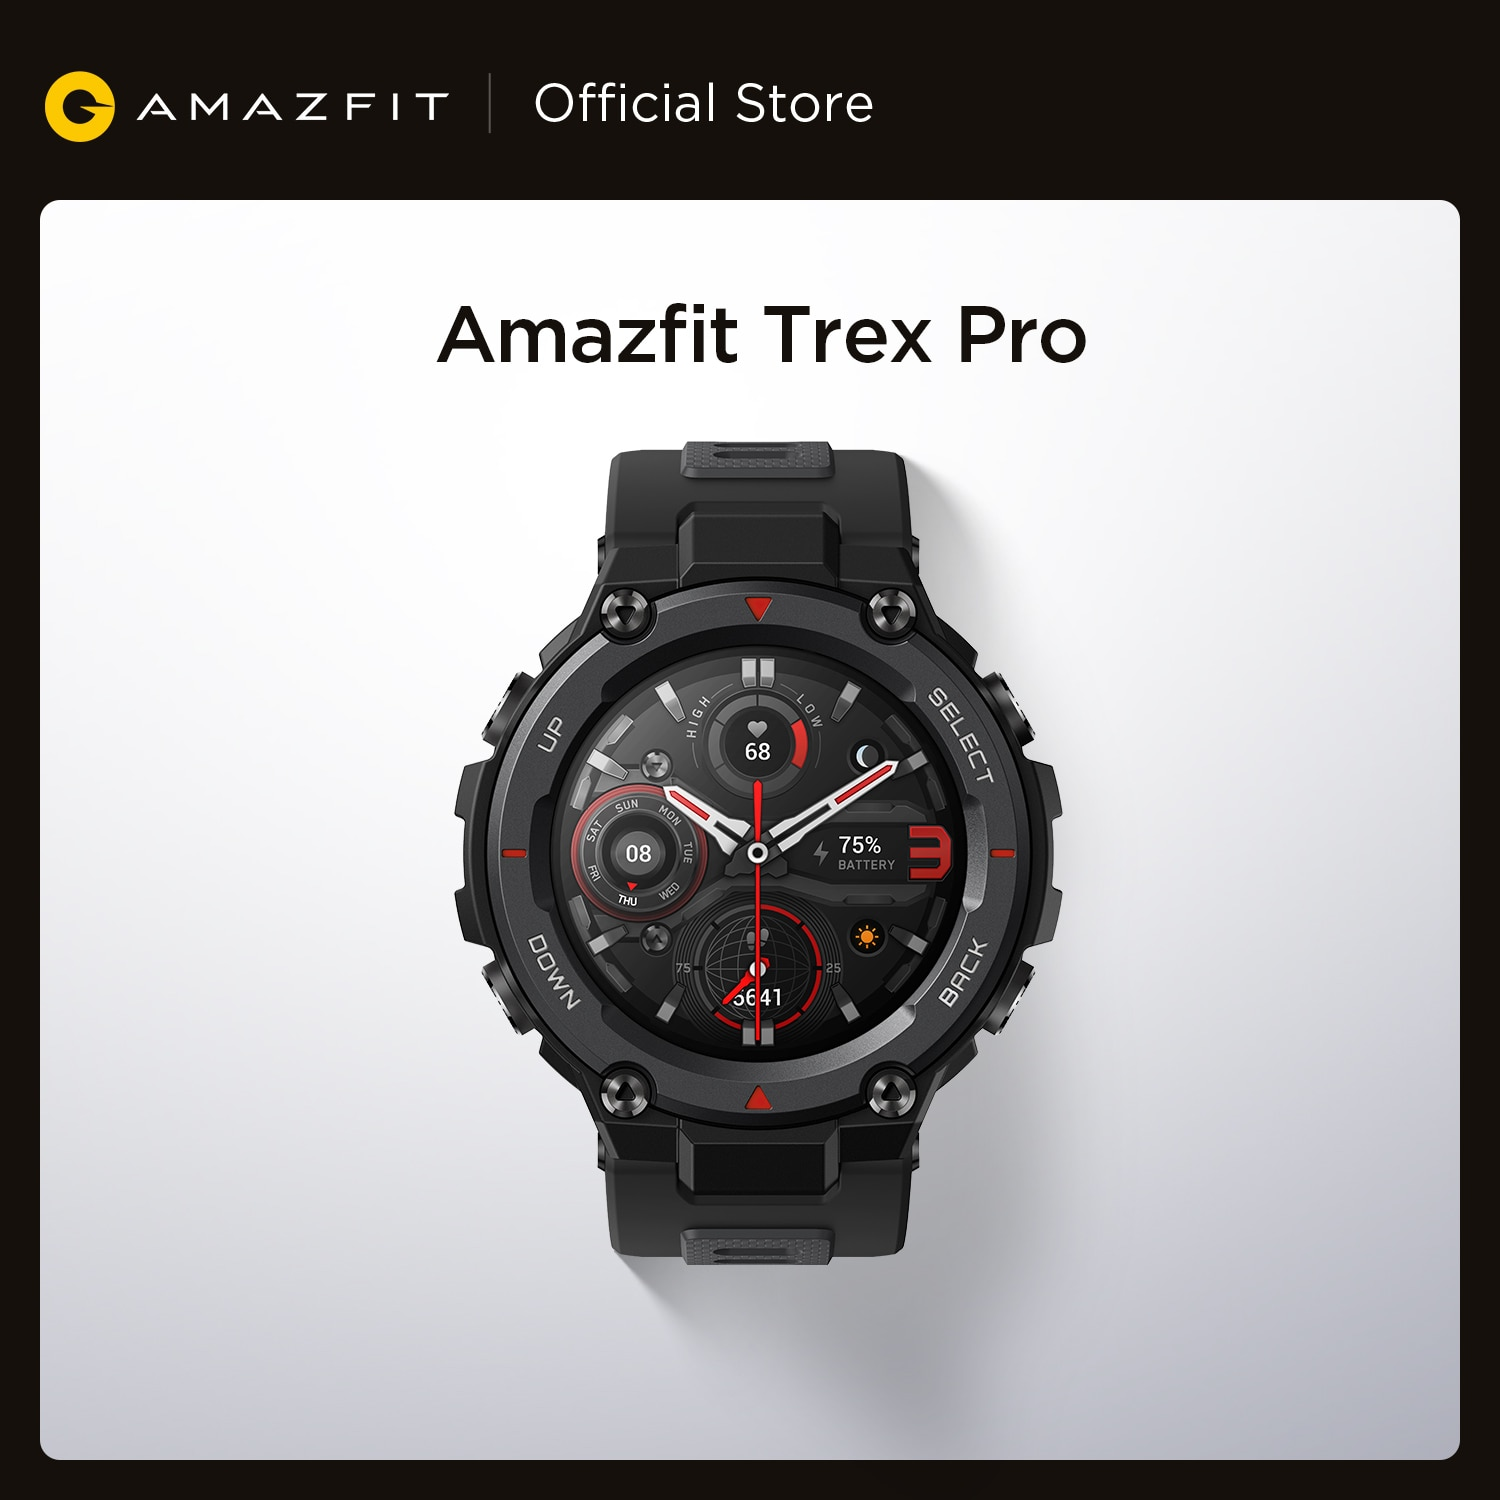 Get Global Version Amazfit Trex Pro GPS Outdoor Smartwatch Waterproof 18-day Battery Life 390mAh Smart Watch For Android iOS Phone